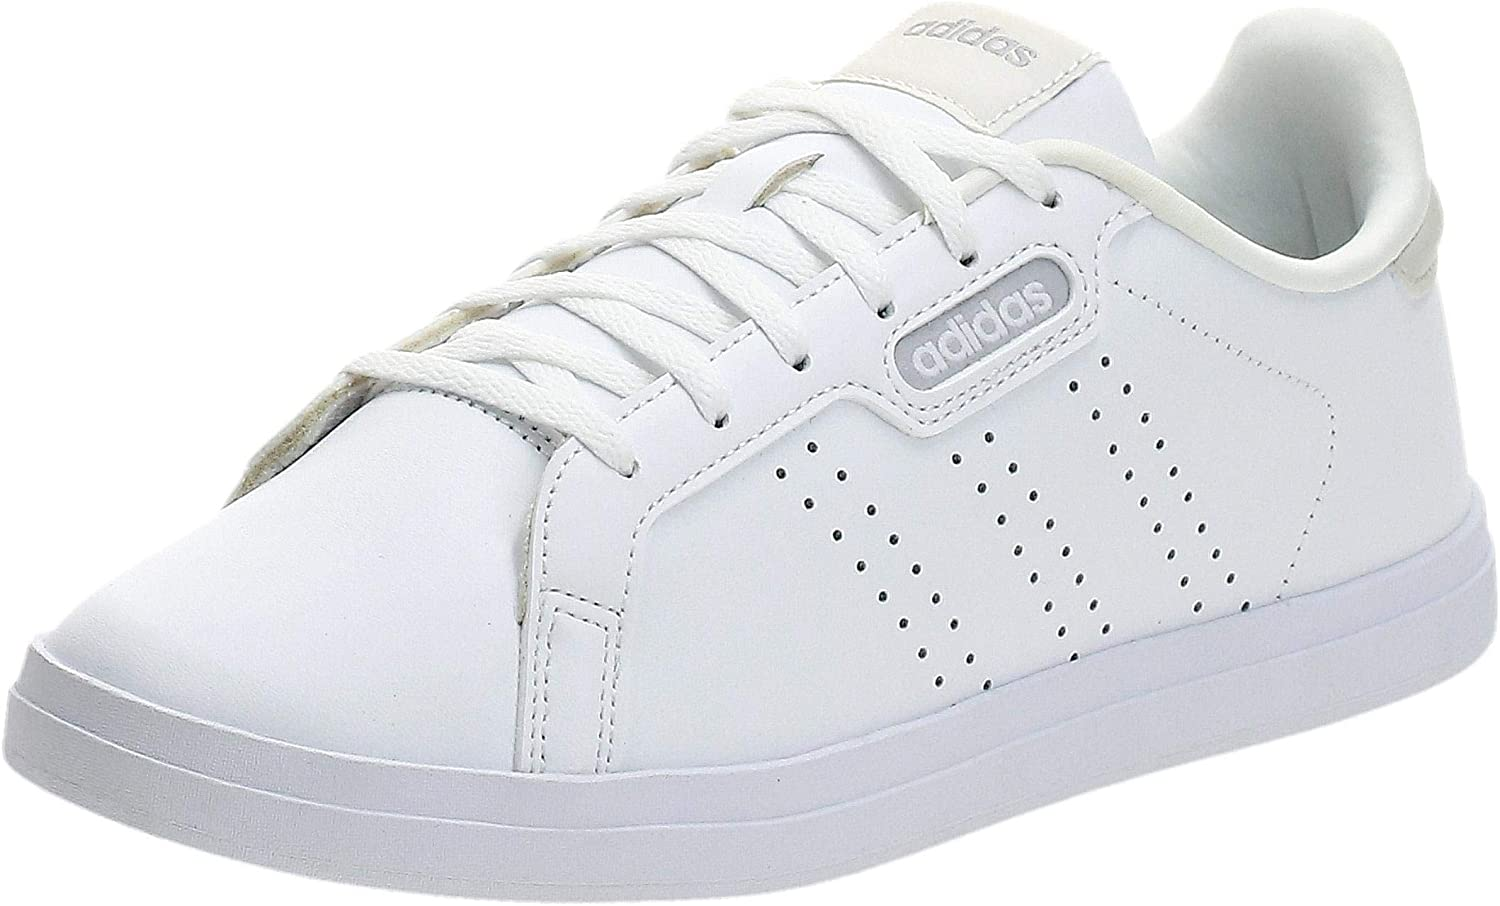 Outlet ☆ Free Shipping adidas Max 44% OFF womens Tennis